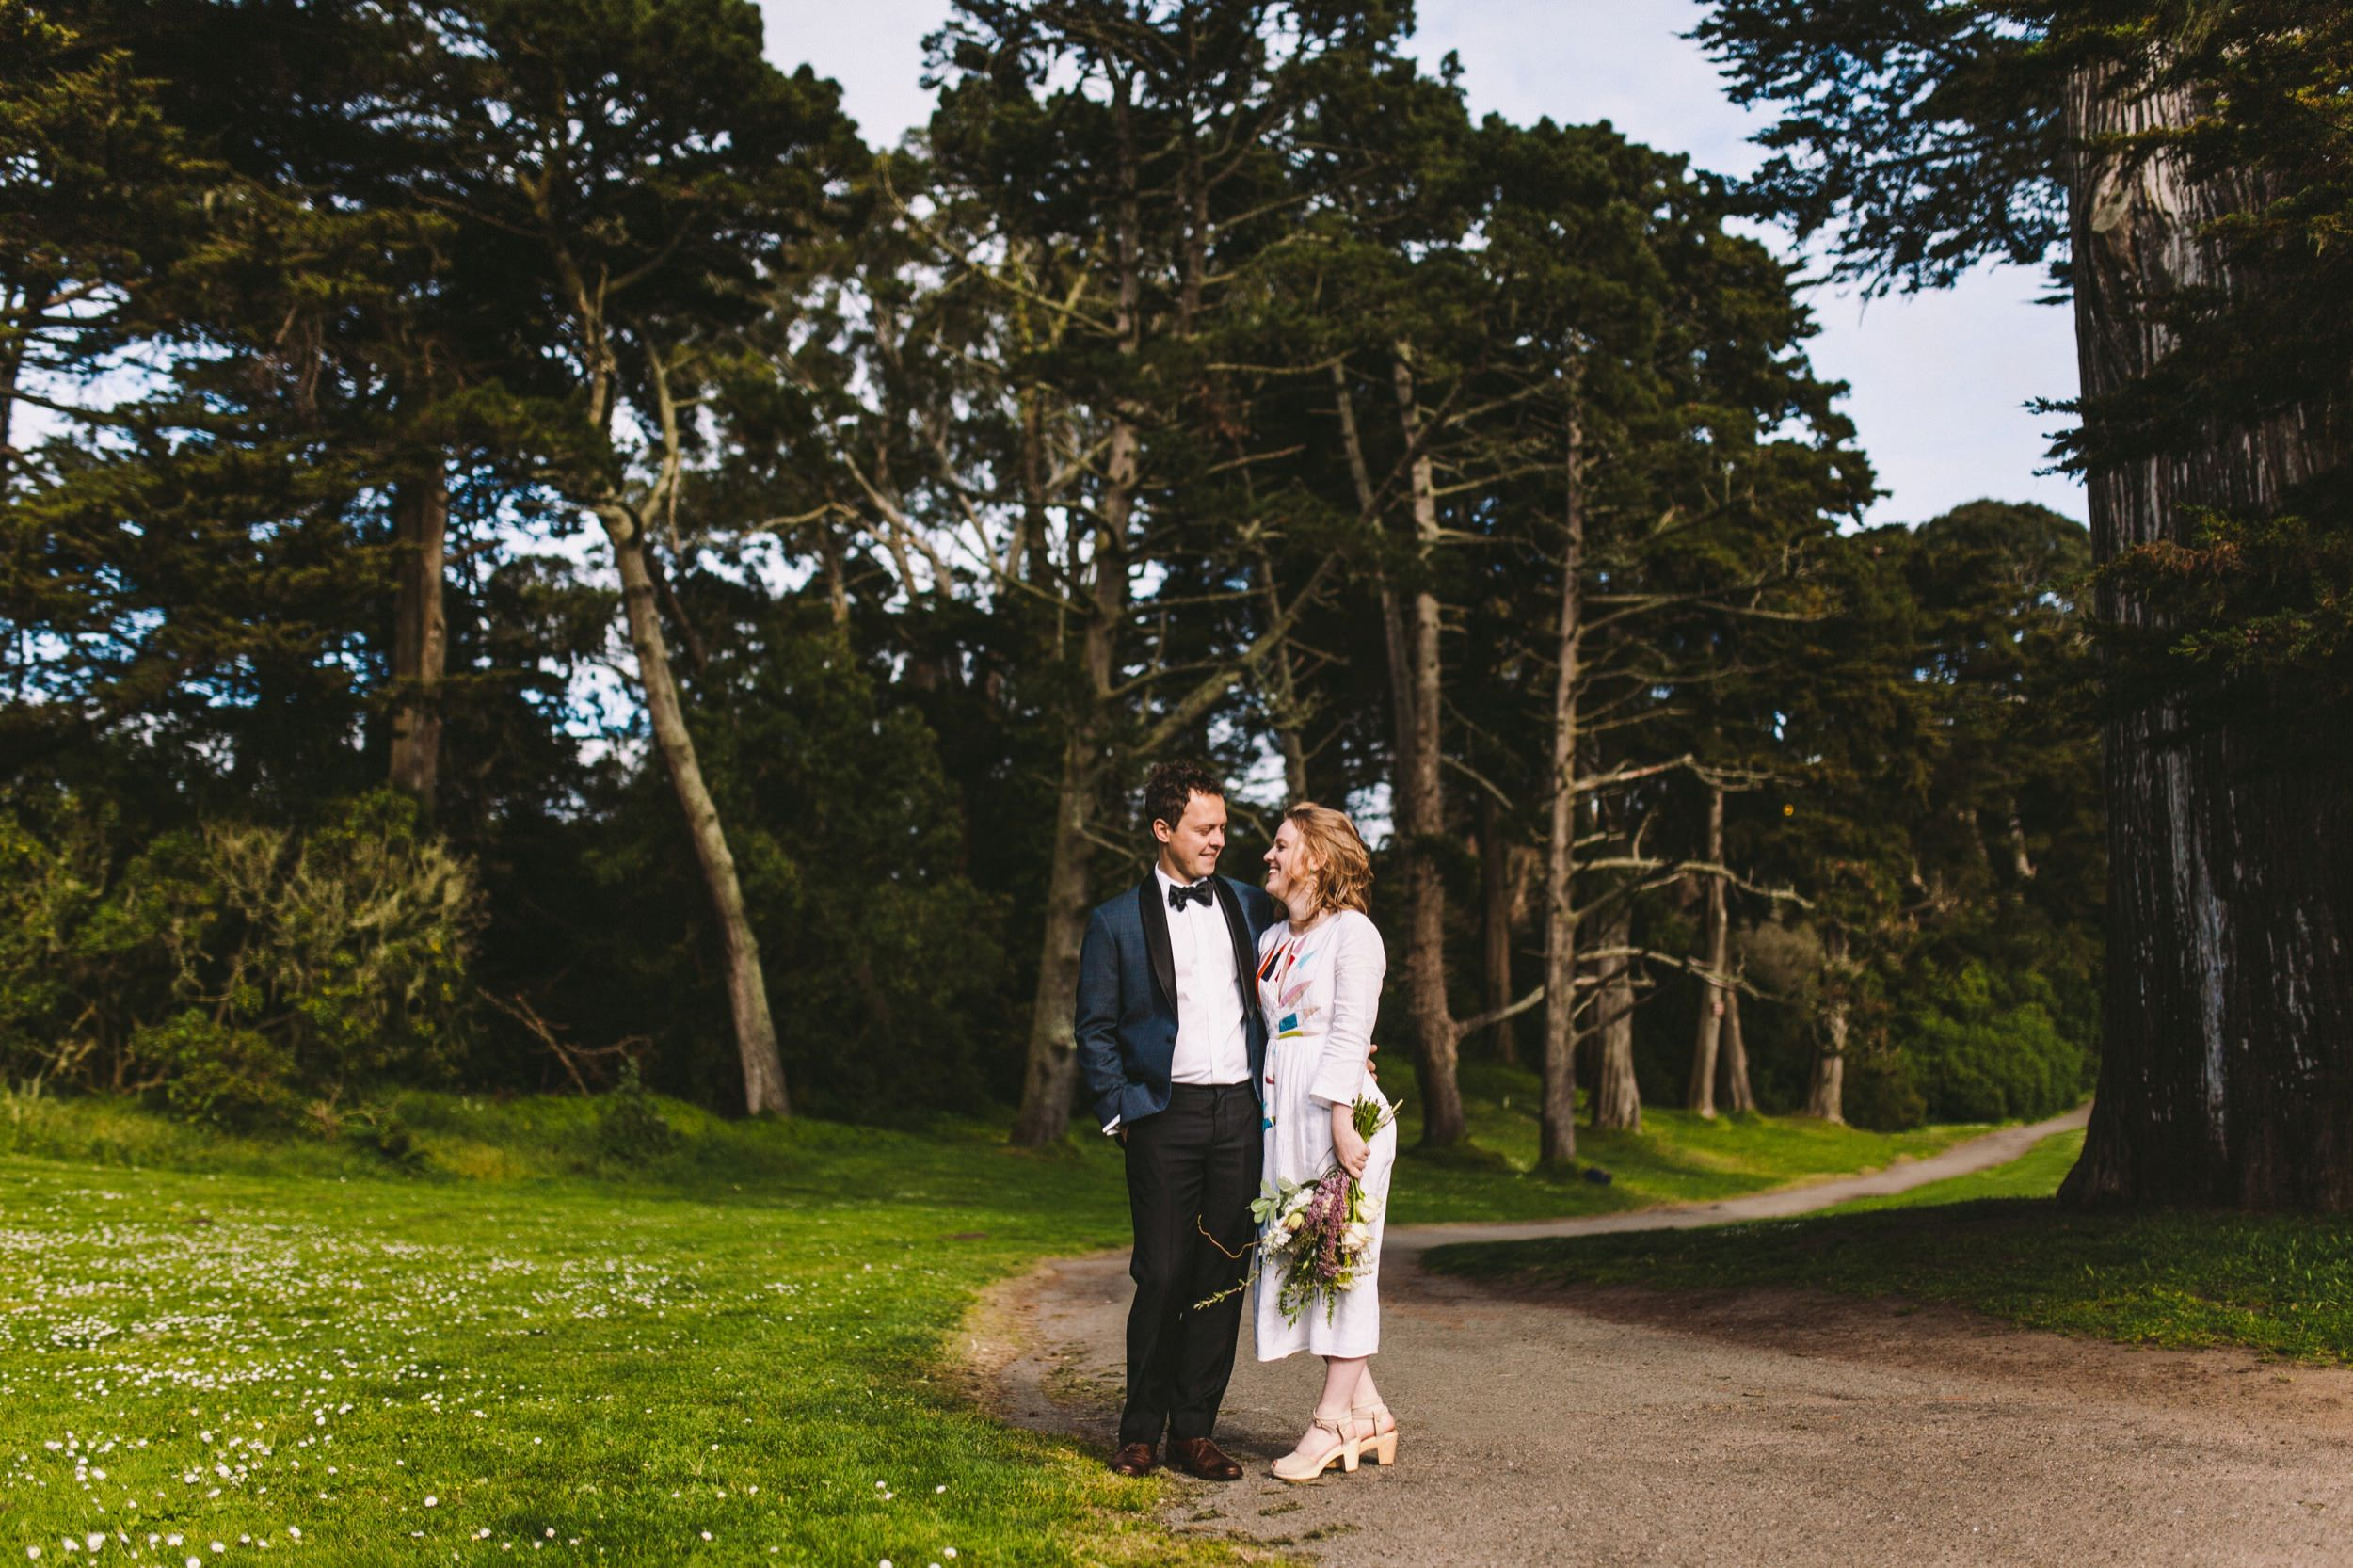 Golden Gate Park Shakespeare Garden Intimate Wedding-105.jpg